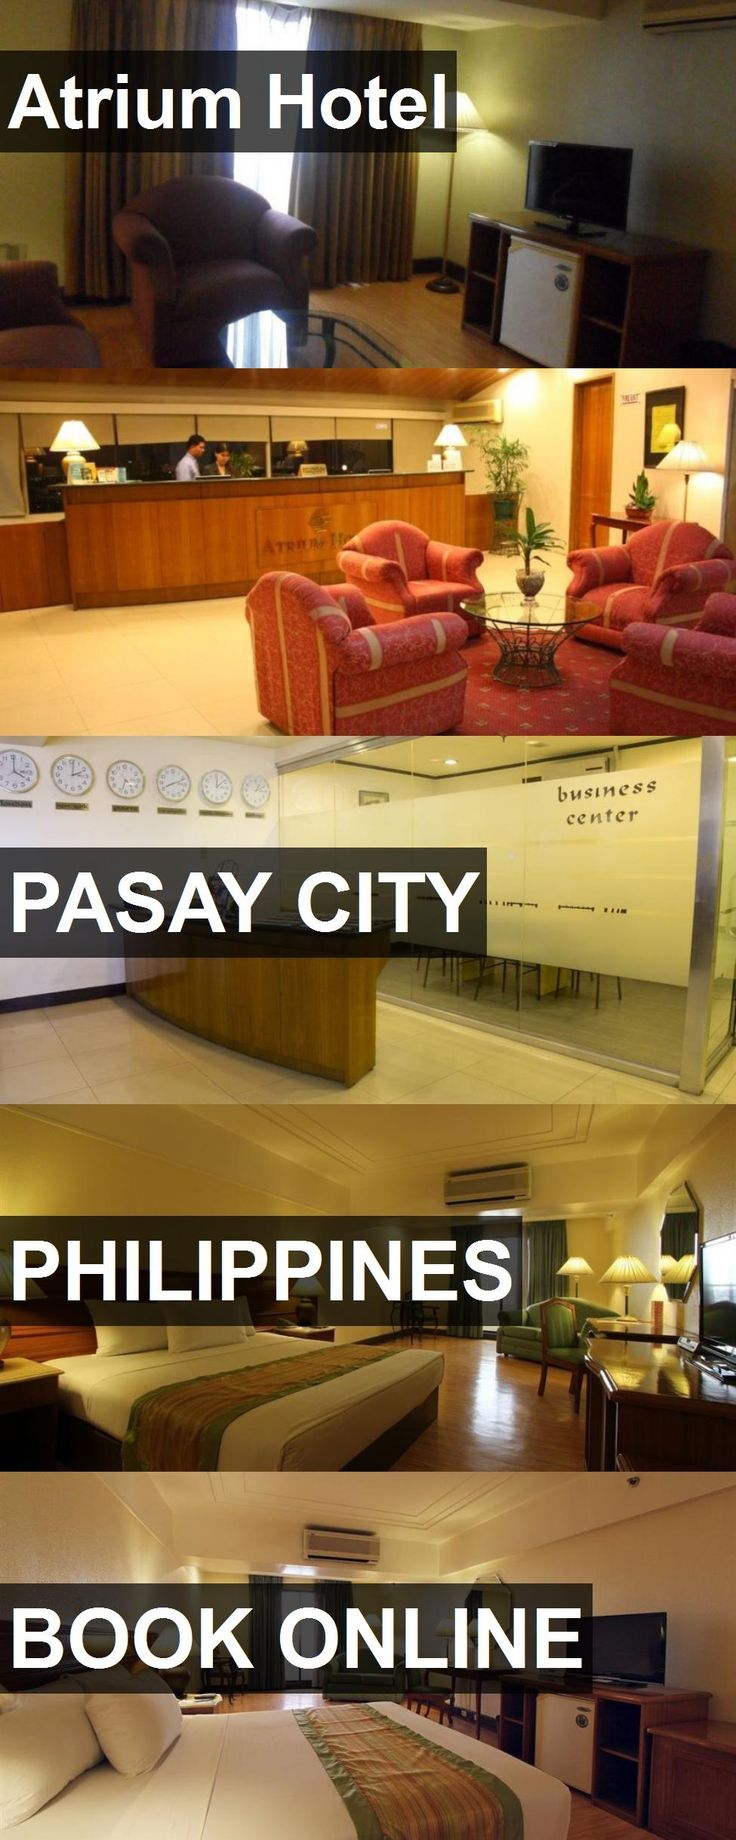 Atrium Hotel in Pasay City, Philippines. For more information, photos, reviews and best prices please follow the link. #Philippines #PasayCity #travel #vacation #hotel